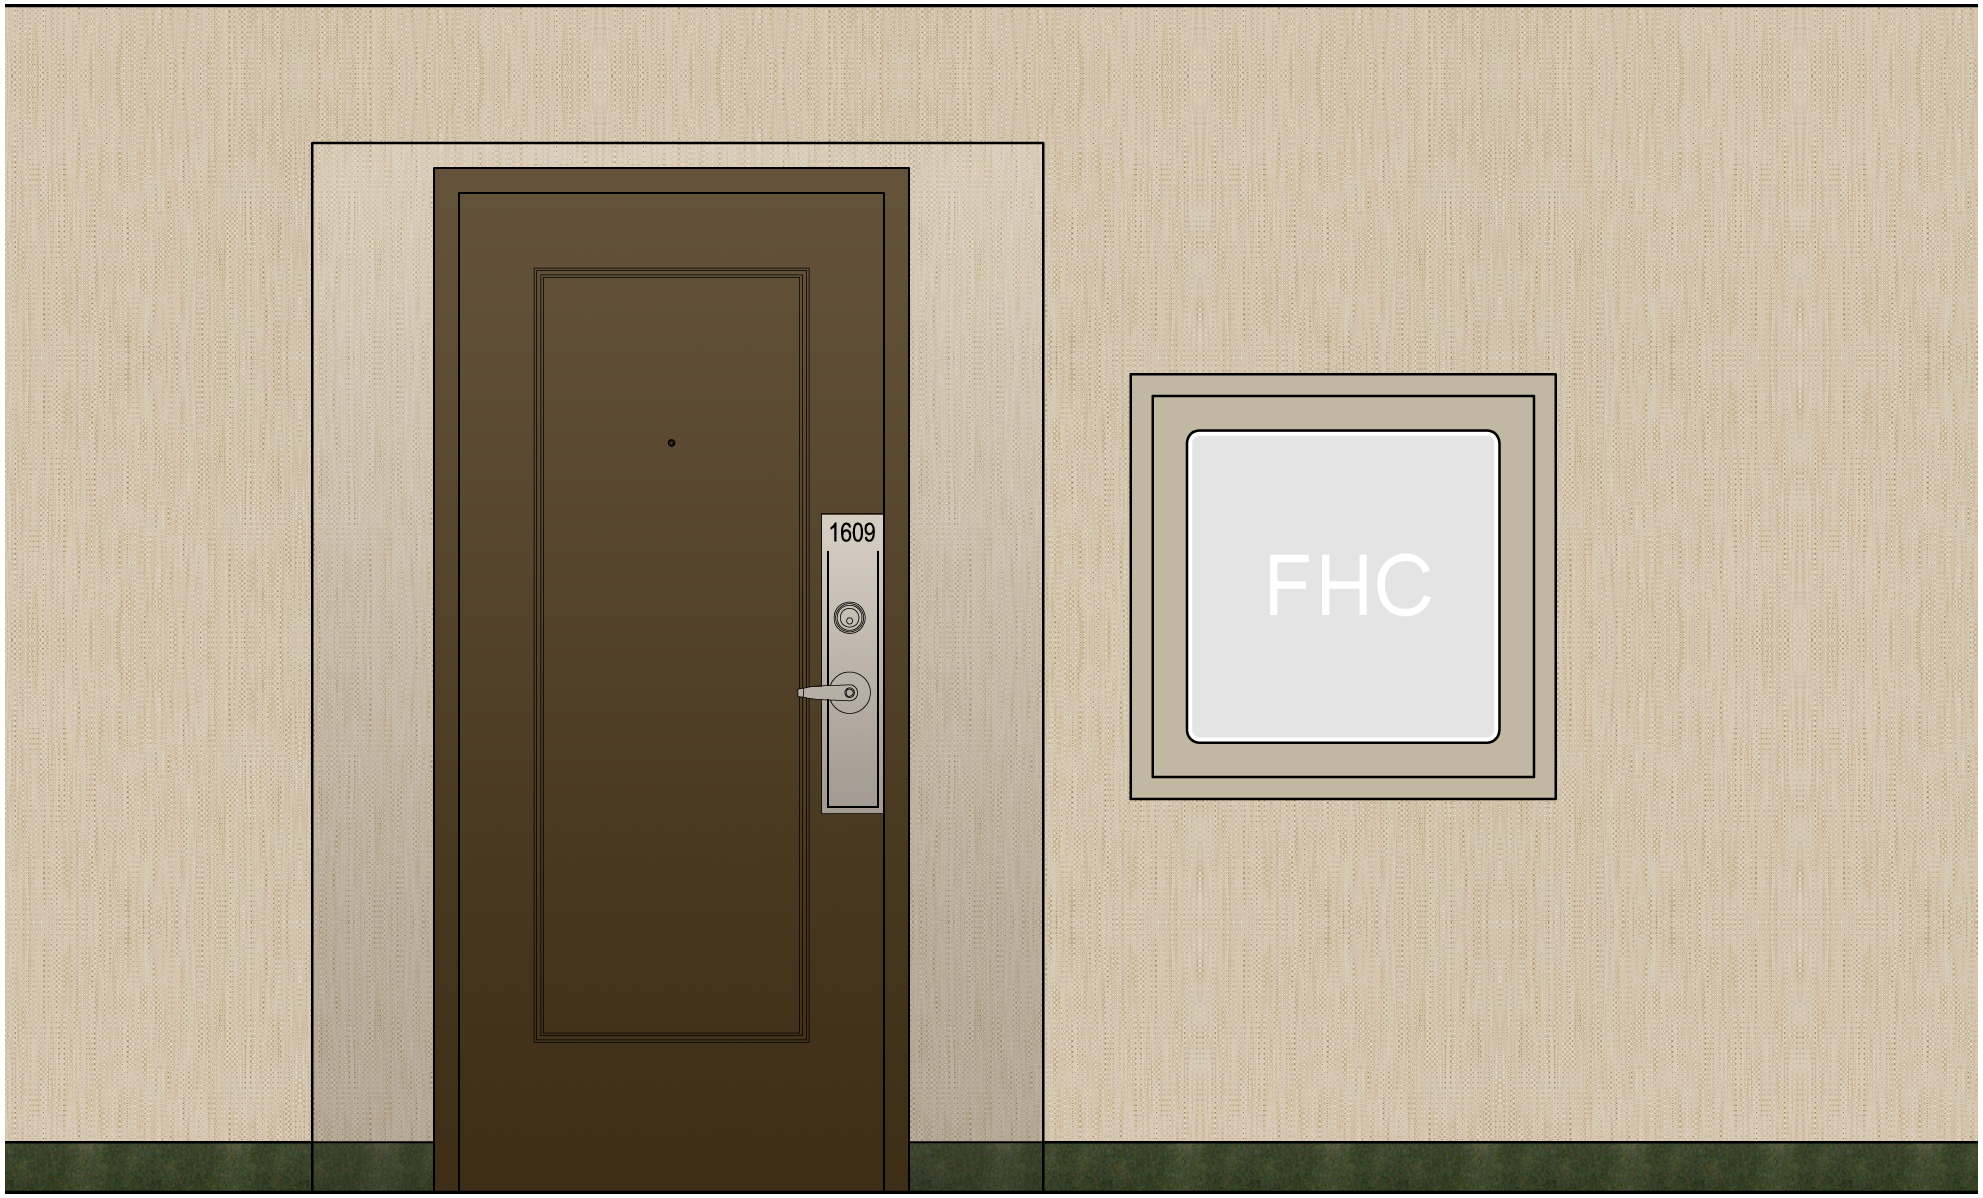 This is the proposed elevation for the suite entry with the new wall vinyl.  The carpet is to be kept so everything around it needs to work for now and when they replace the carpet in a few years. Tricky to do well so we will help with carpet selection in the future so it doesn't end up looking like a piecemeal  building.